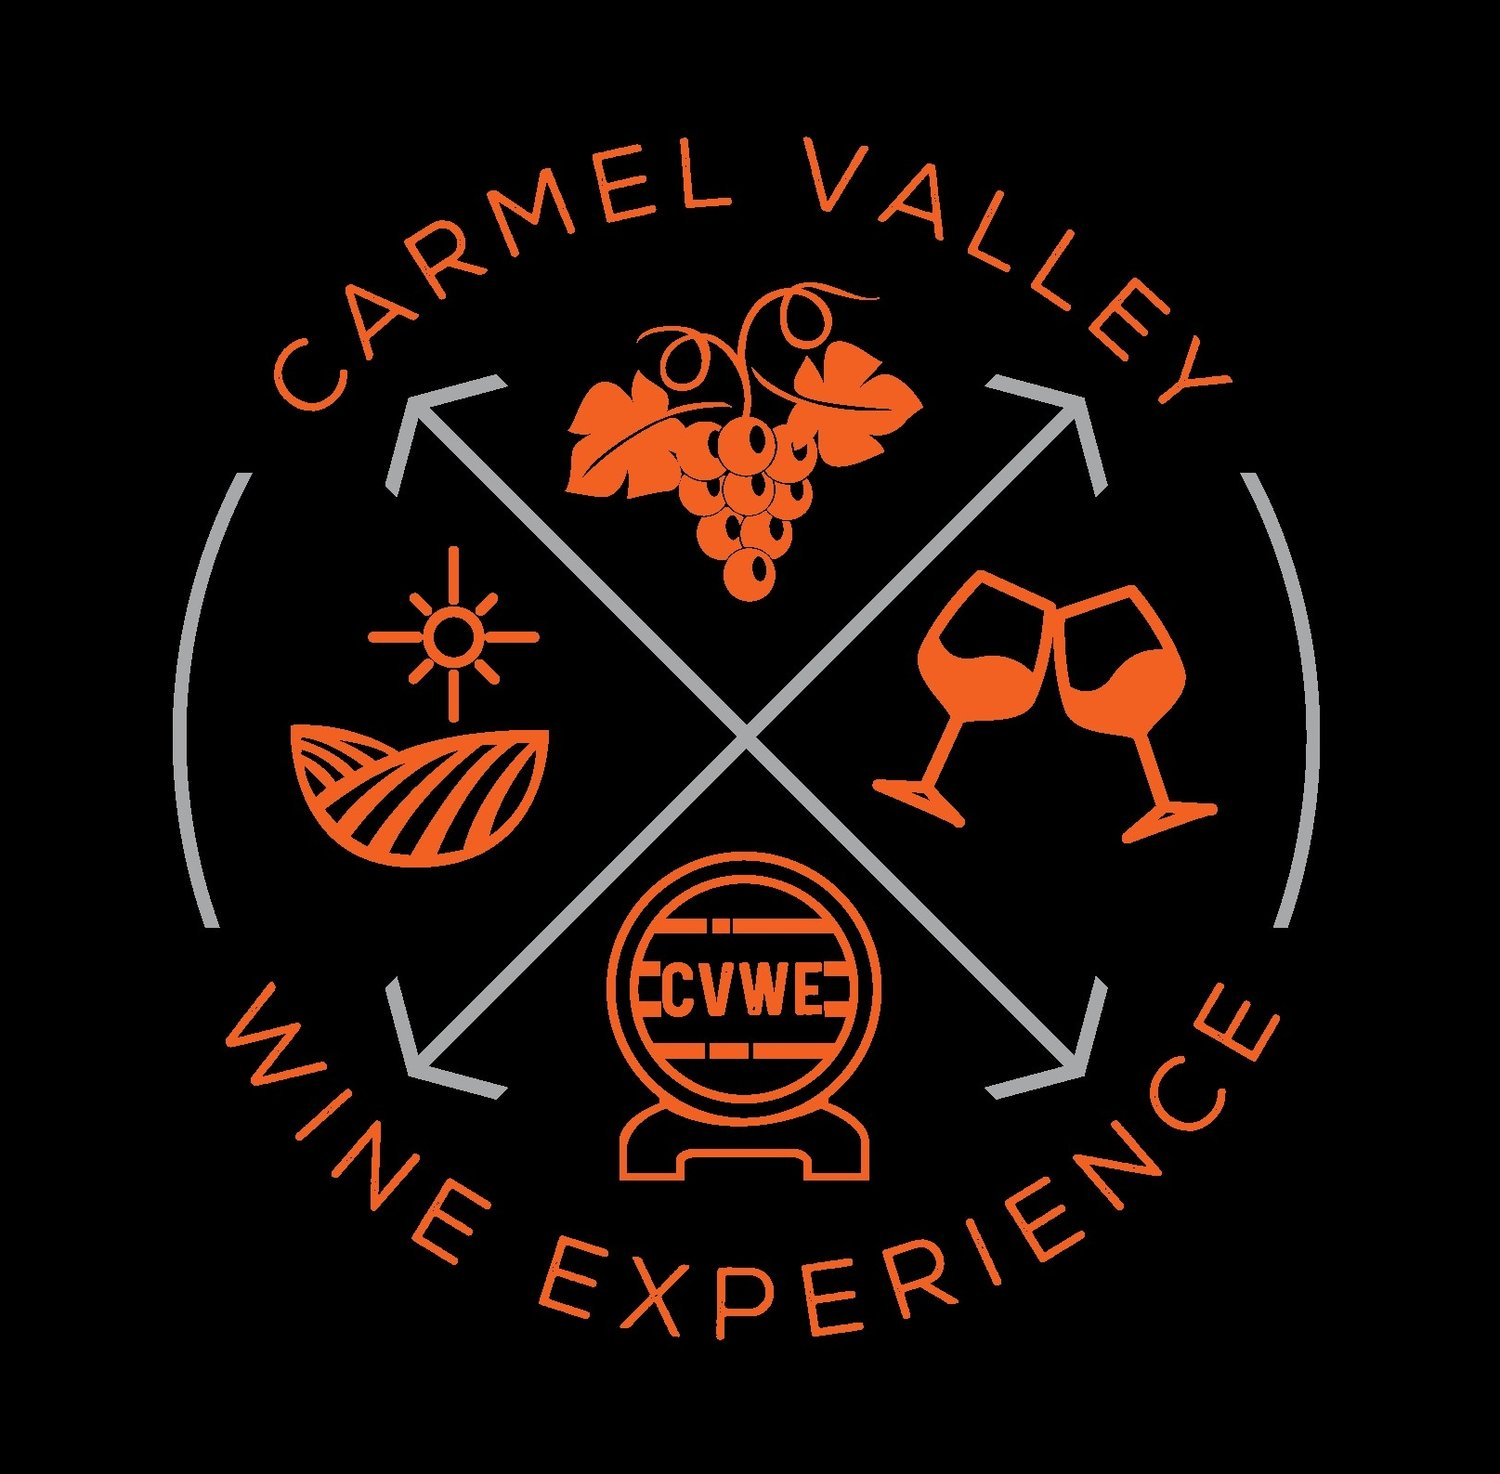 Carmel Valley Wine Experience